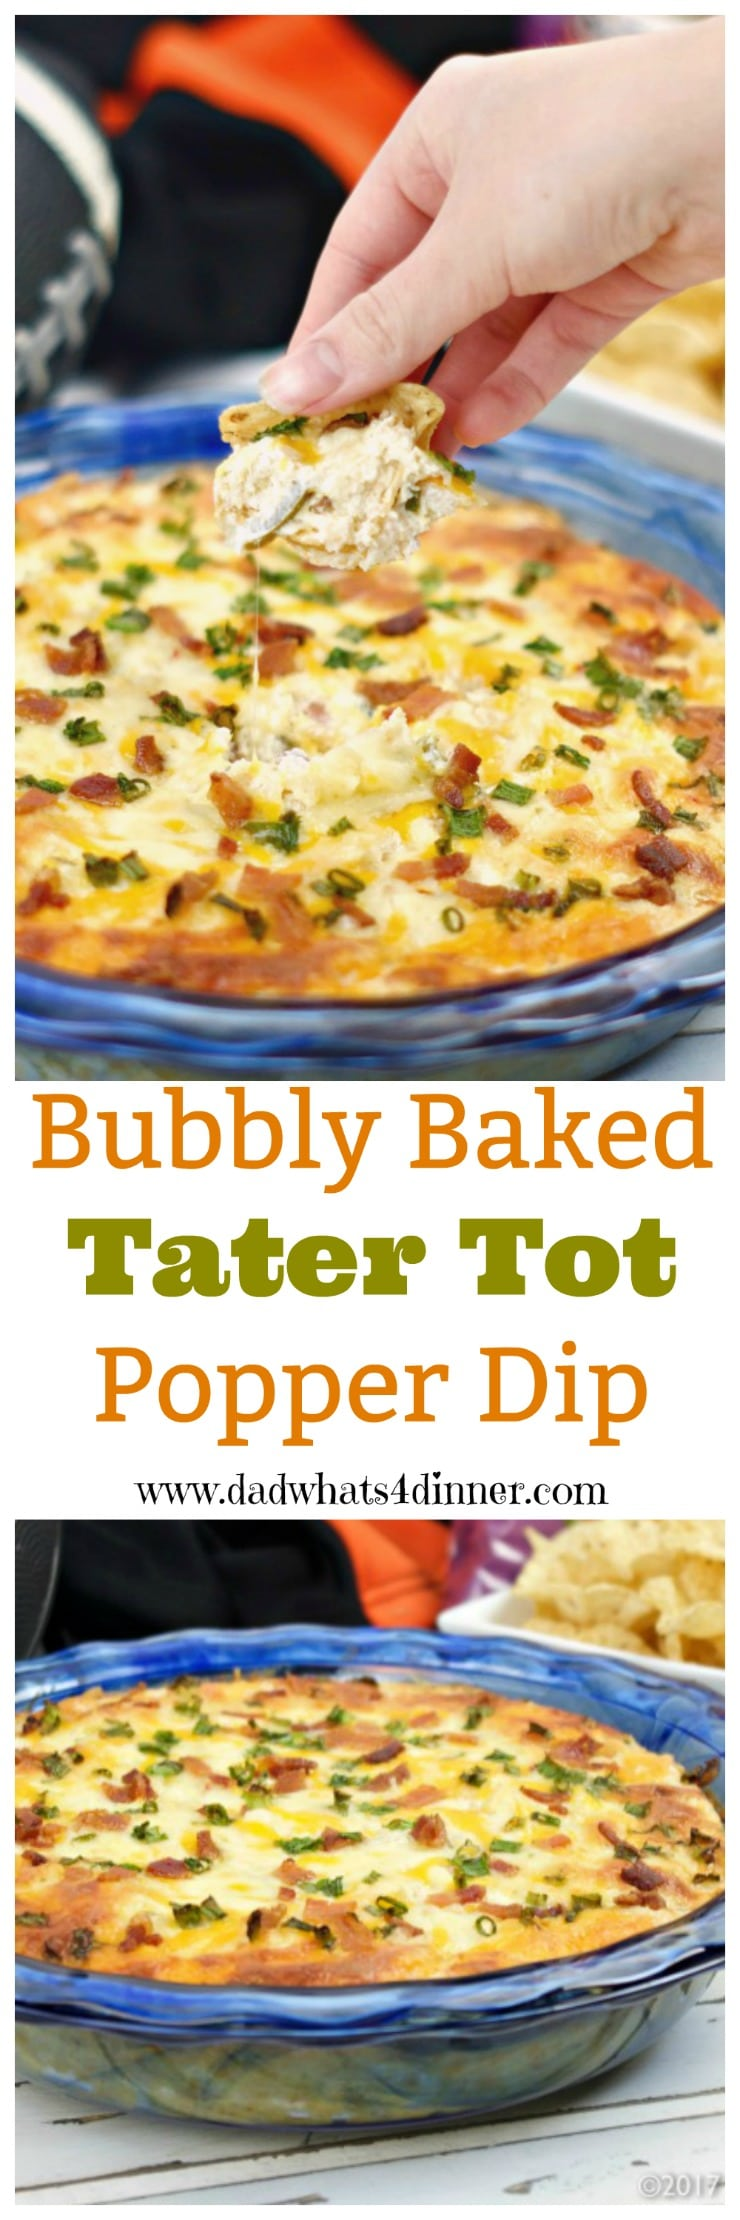 Bubbly Baked Tater Tot Popper Dip is a mash-up of two of my favorites, tater tots, and jalapeno popper dip. Perfect for tailgating or family game night.  #ad @familydollar #gameday #biggame #appetizer #dips #jalapenos #deliciousfood #recipes #tailgating #spicy www.dadwhats4dinner.com